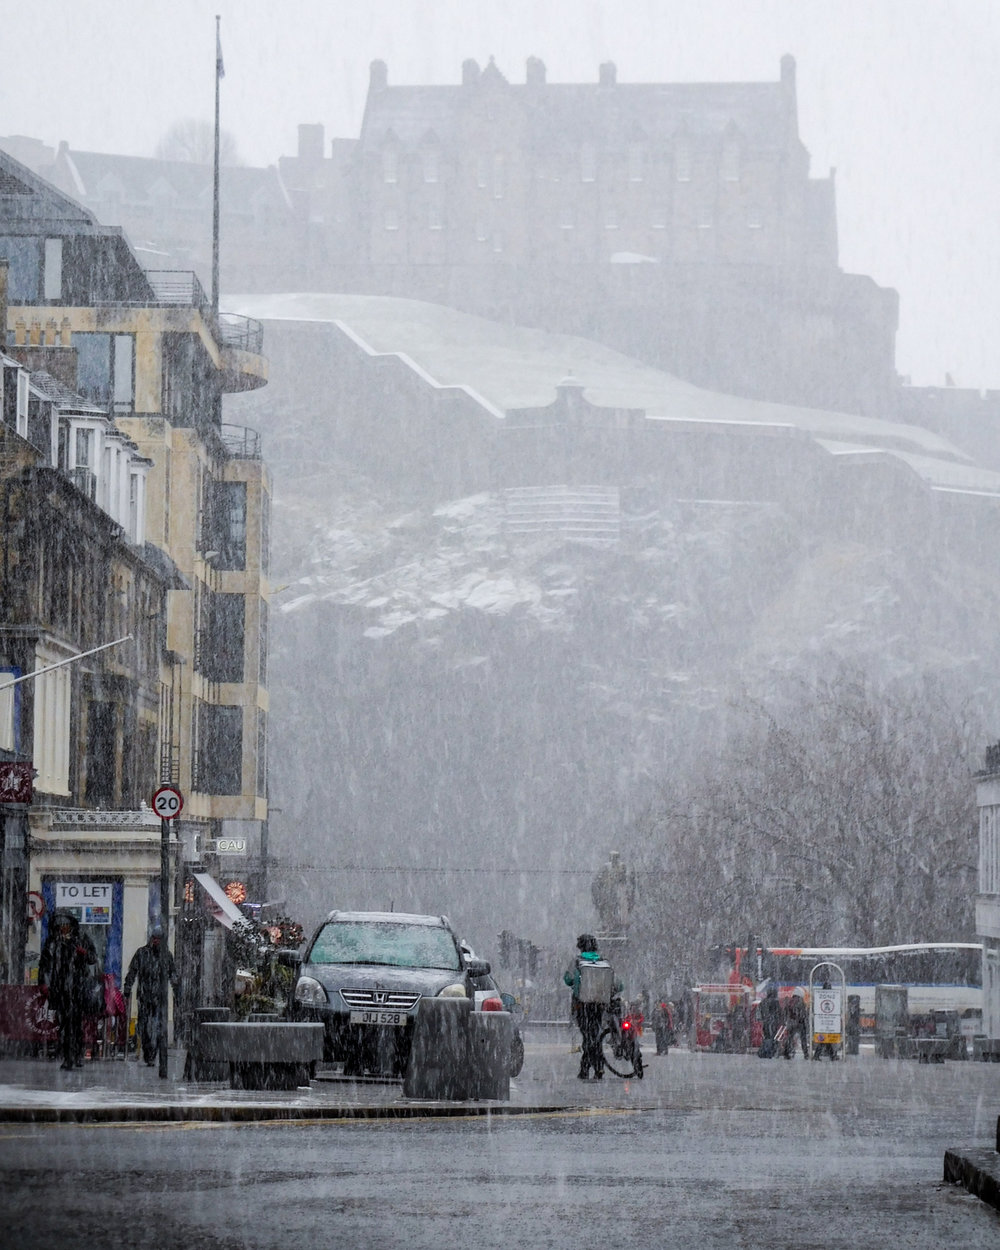 Snow in Edinburgh, February 2018